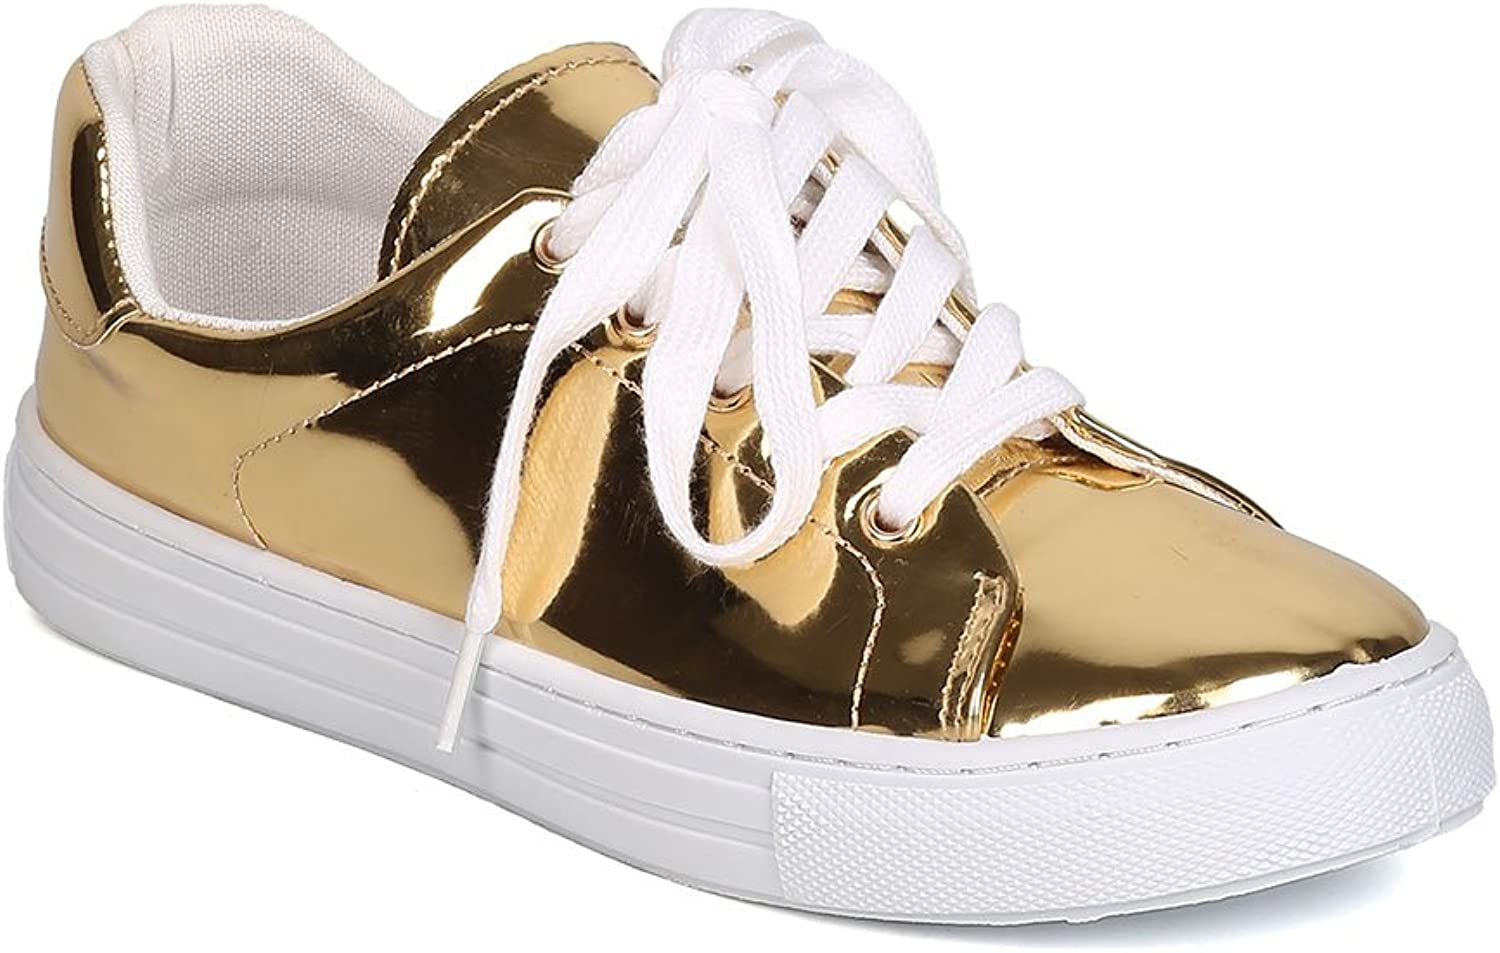 Qupid Women Metallic Leatherette Lace Up Sneaker GJ70 - gold